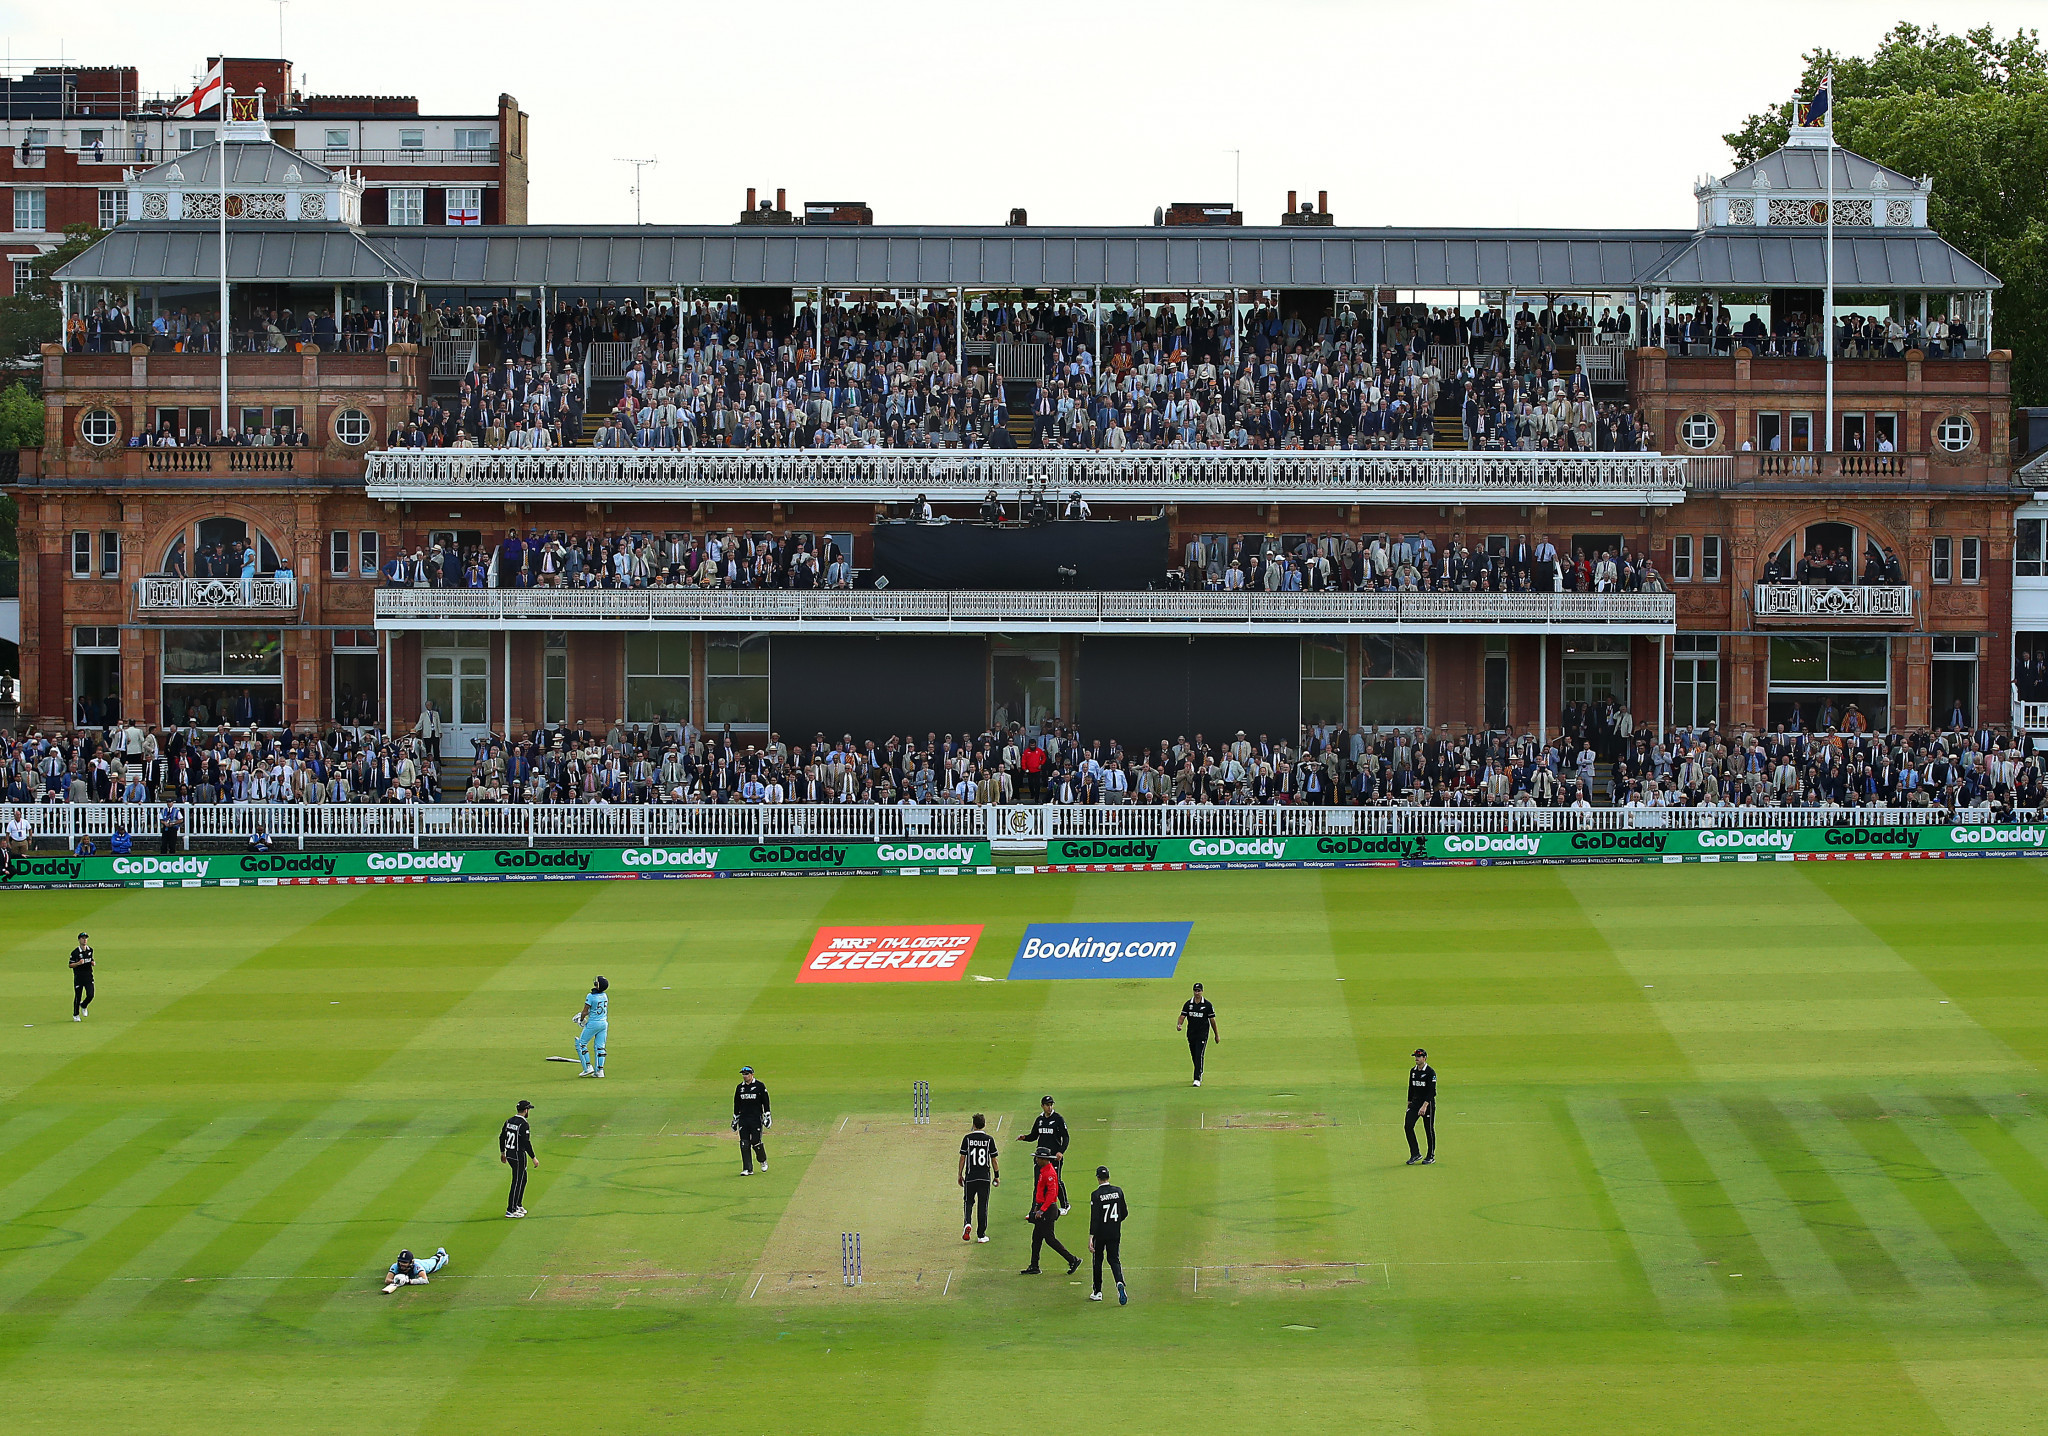 Sunset+Vine received an award for their coverage of last year's ICC Cricket World Cup Final ©Getty Images